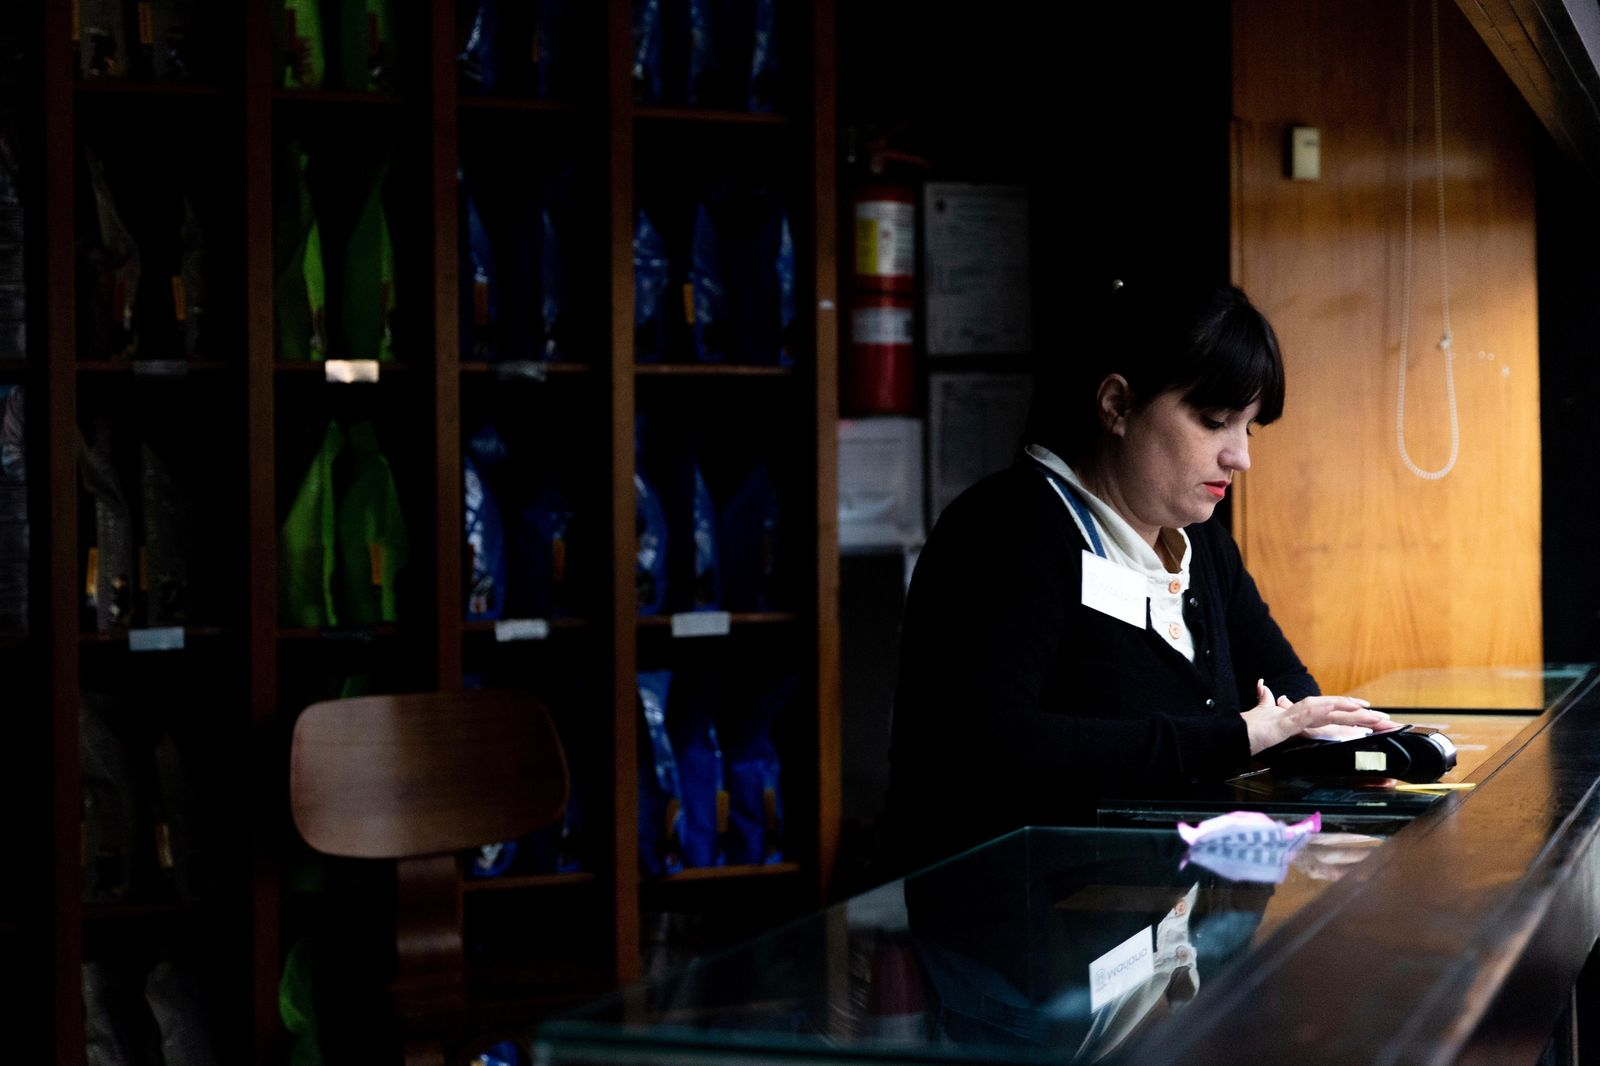 An employee uses a payment device in a coffee shop still affected by the power outage, in Buenos Aires, Argentina, Monday, June 17, 2019. As lights turned back on across Argentina, Uruguay and Paraguay after a massive blackout that hit tens of millions people, authorities were still largely in the dark about what caused the collapse of the interconnected grid and were tallying the damage from the unforeseen disaster. (AP Photo/Tomas F. Cuesta)